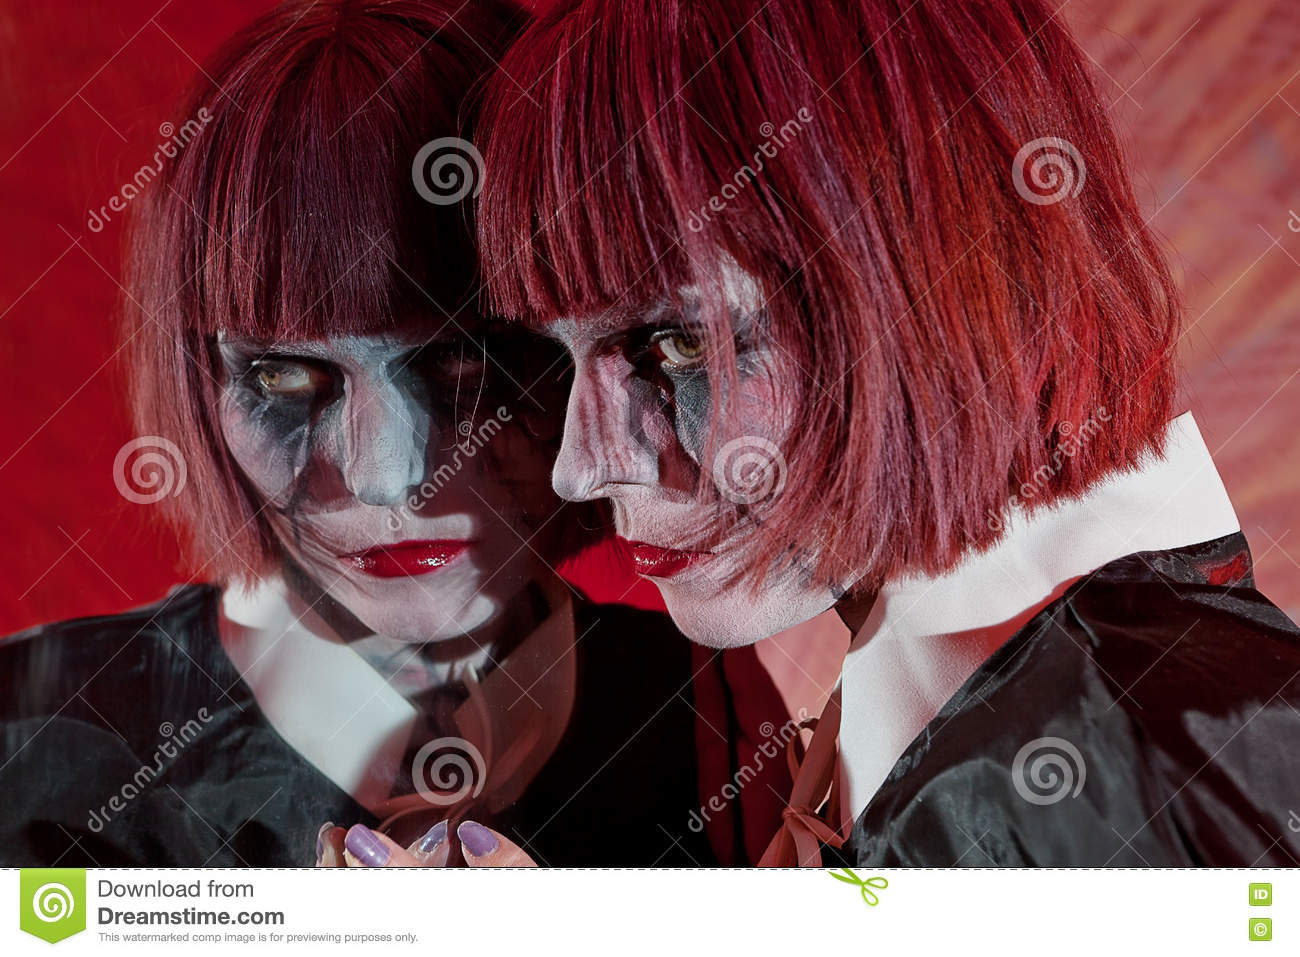 Scary ghost face in dark mirror stock image for Mirror zombie girl